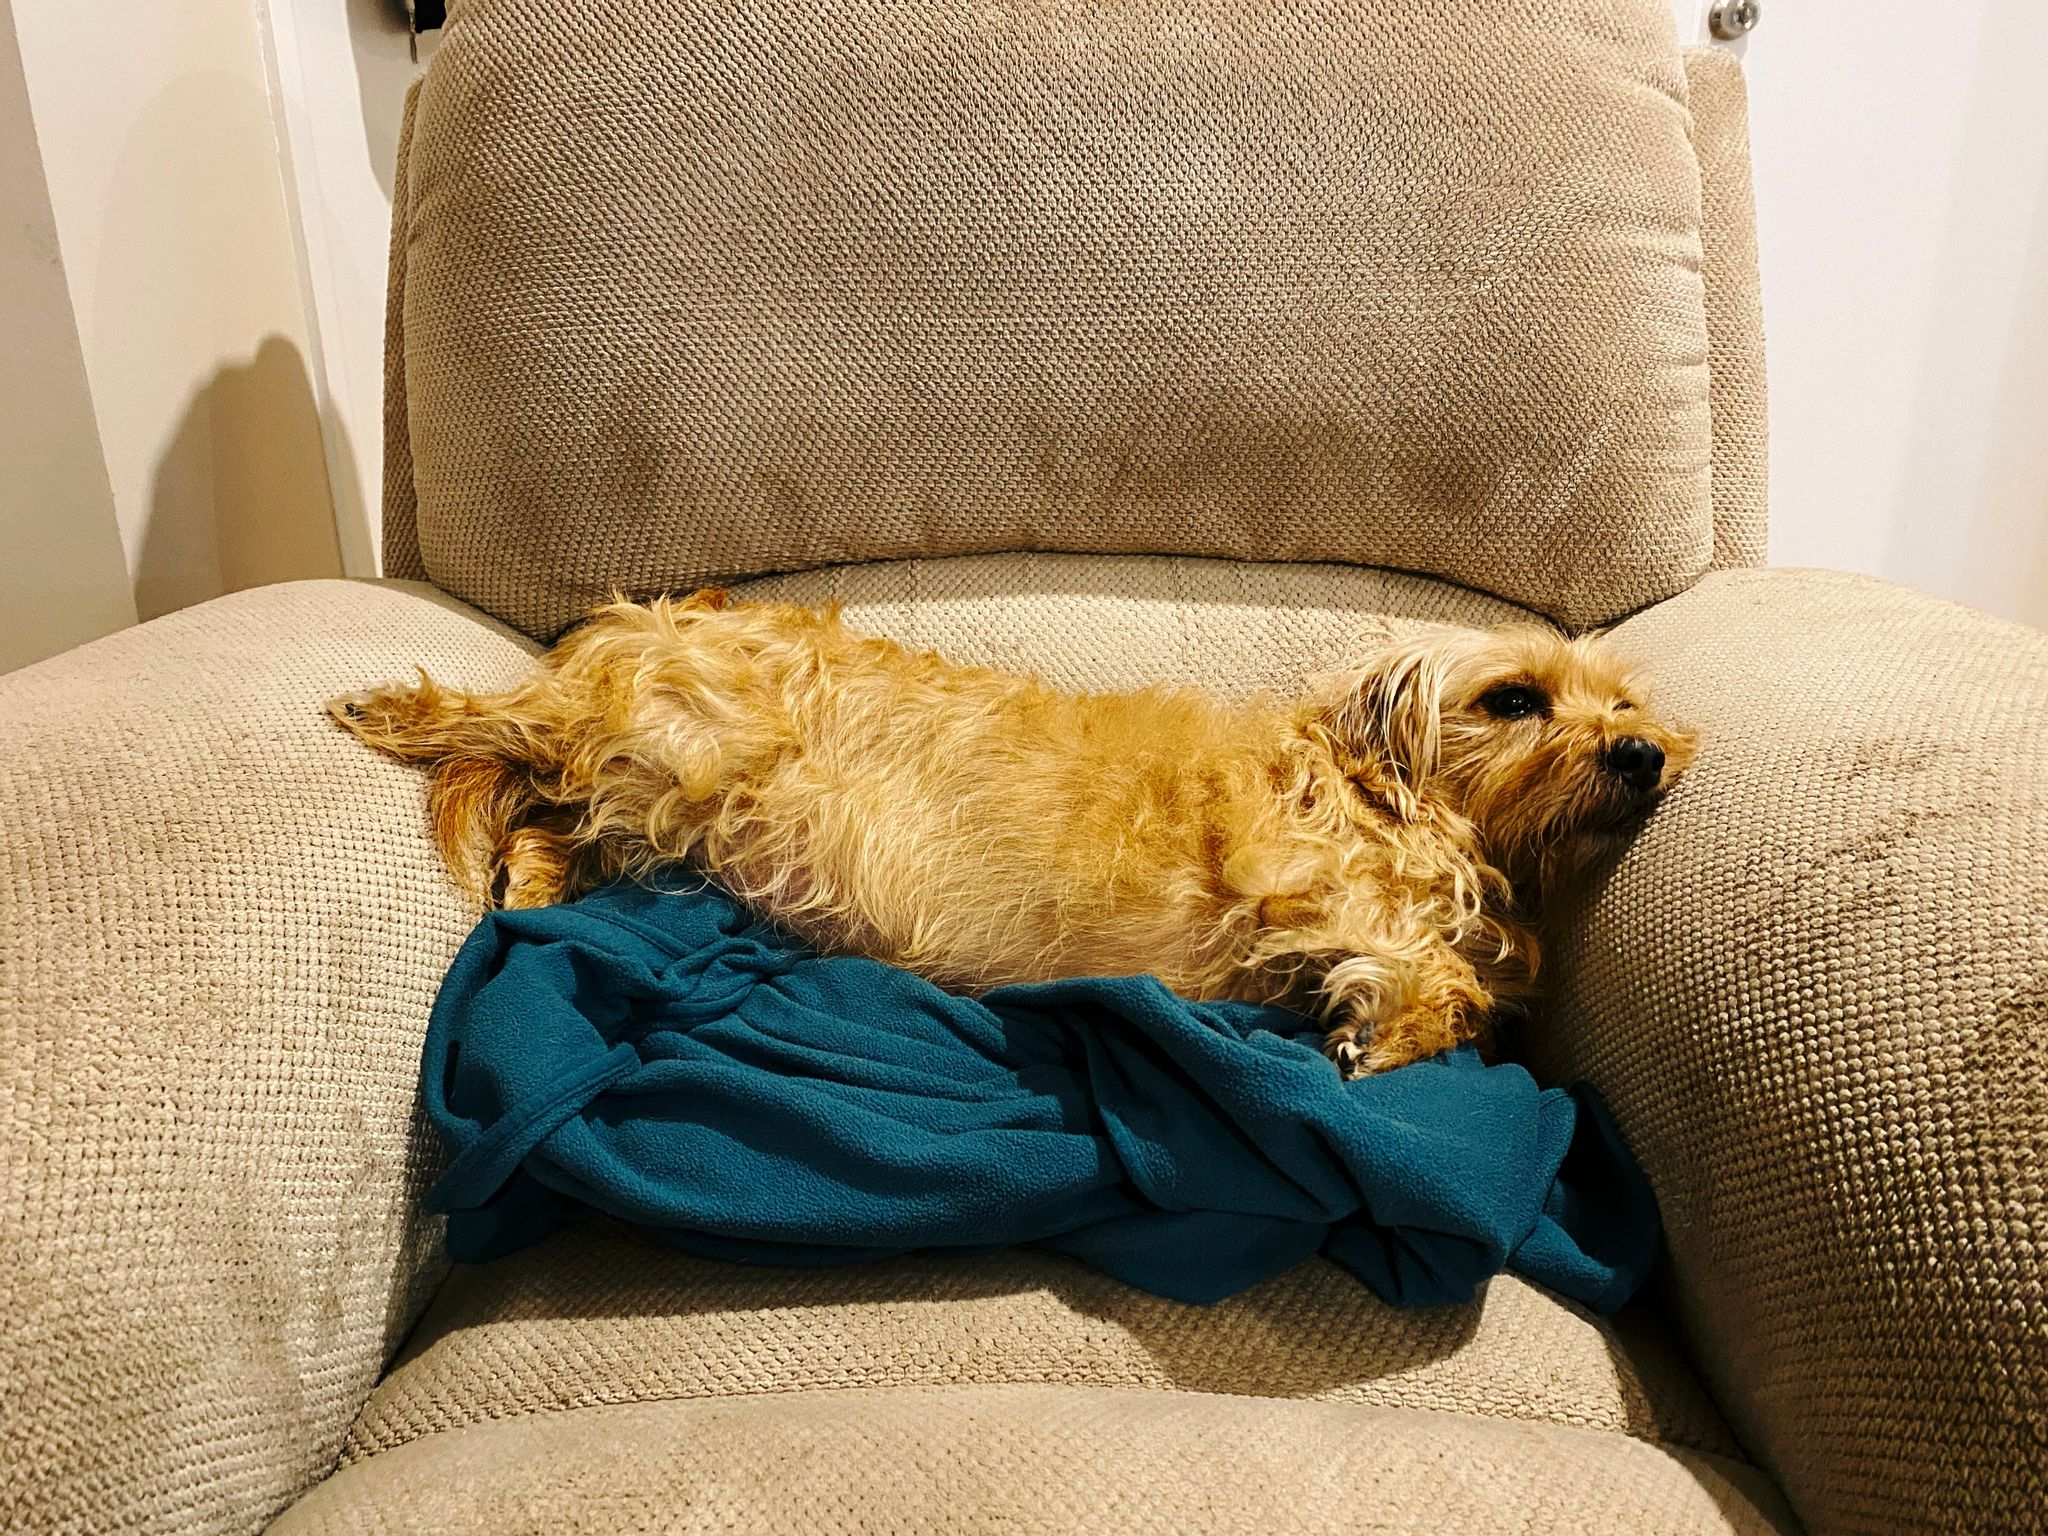 A photo of a small scruffy blonde dog lying on a green blanket sideways on a single-seater lounge. His face is mushed against one arm and his back legs are propped up on the other arm.